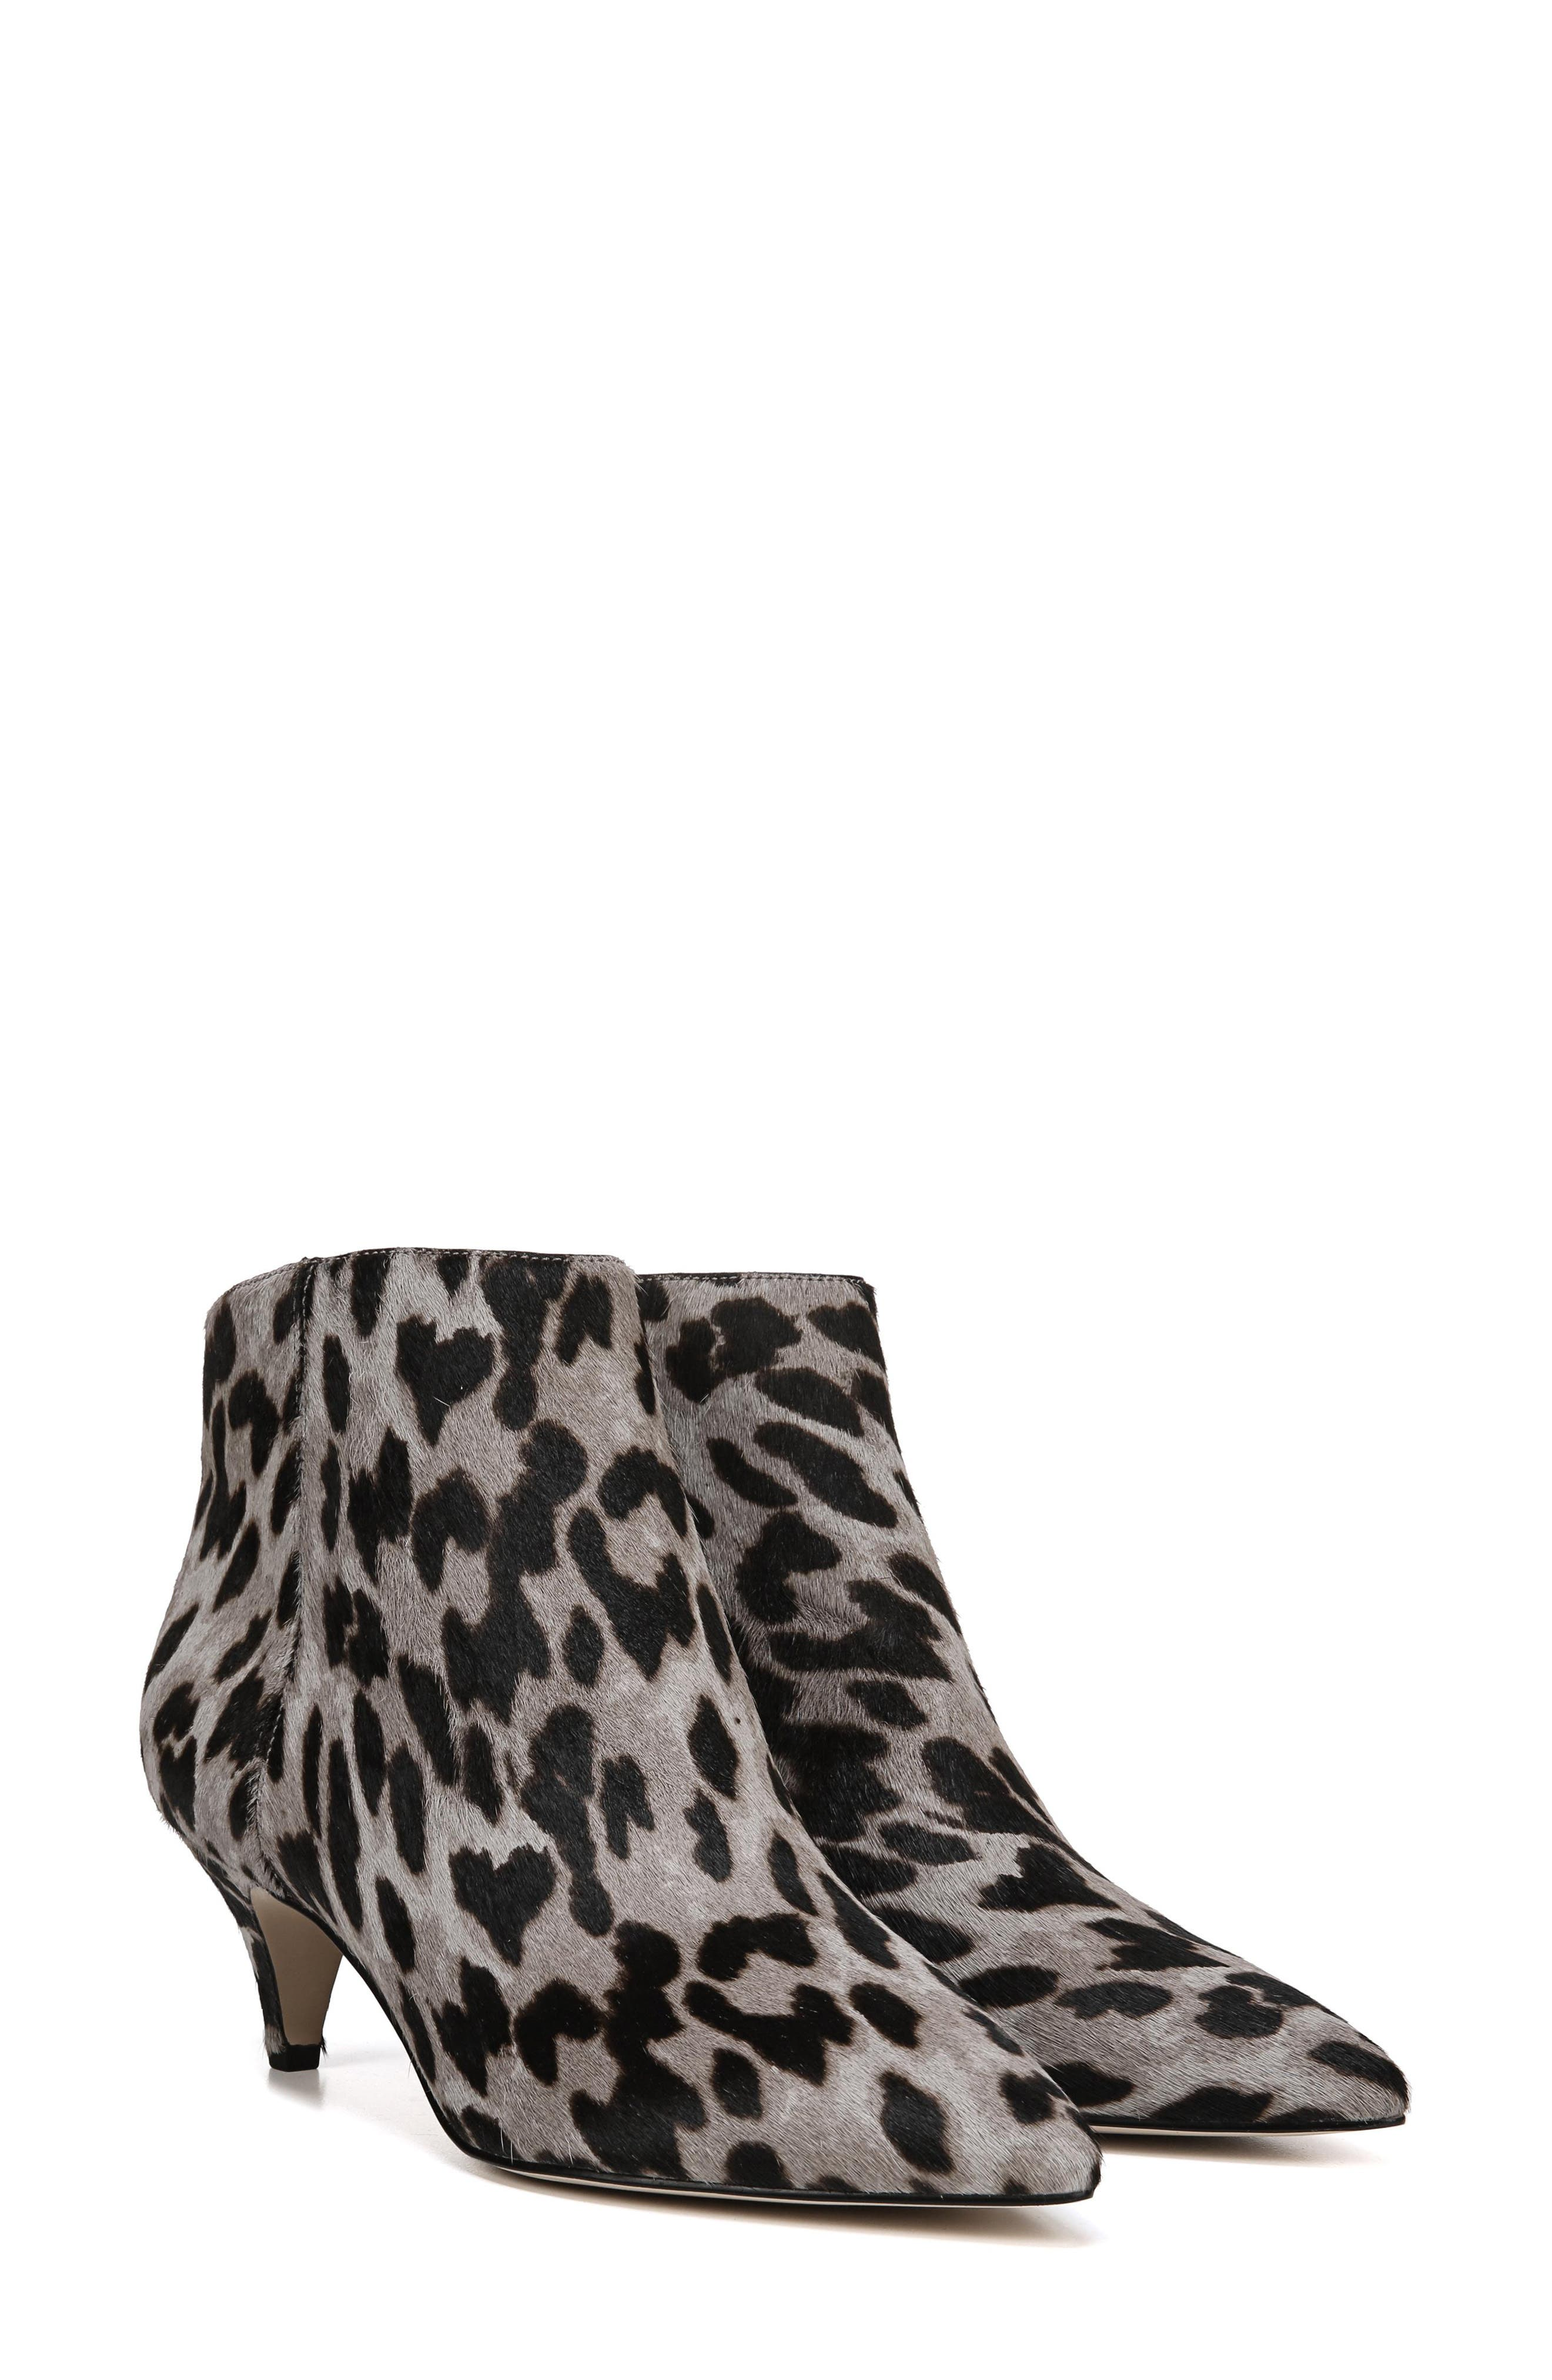 Kinzey Genuine Calf Hair Pointy Toe Bootie,                             Alternate thumbnail 8, color,                             GREY LEOPARD BRAHMA HAIR